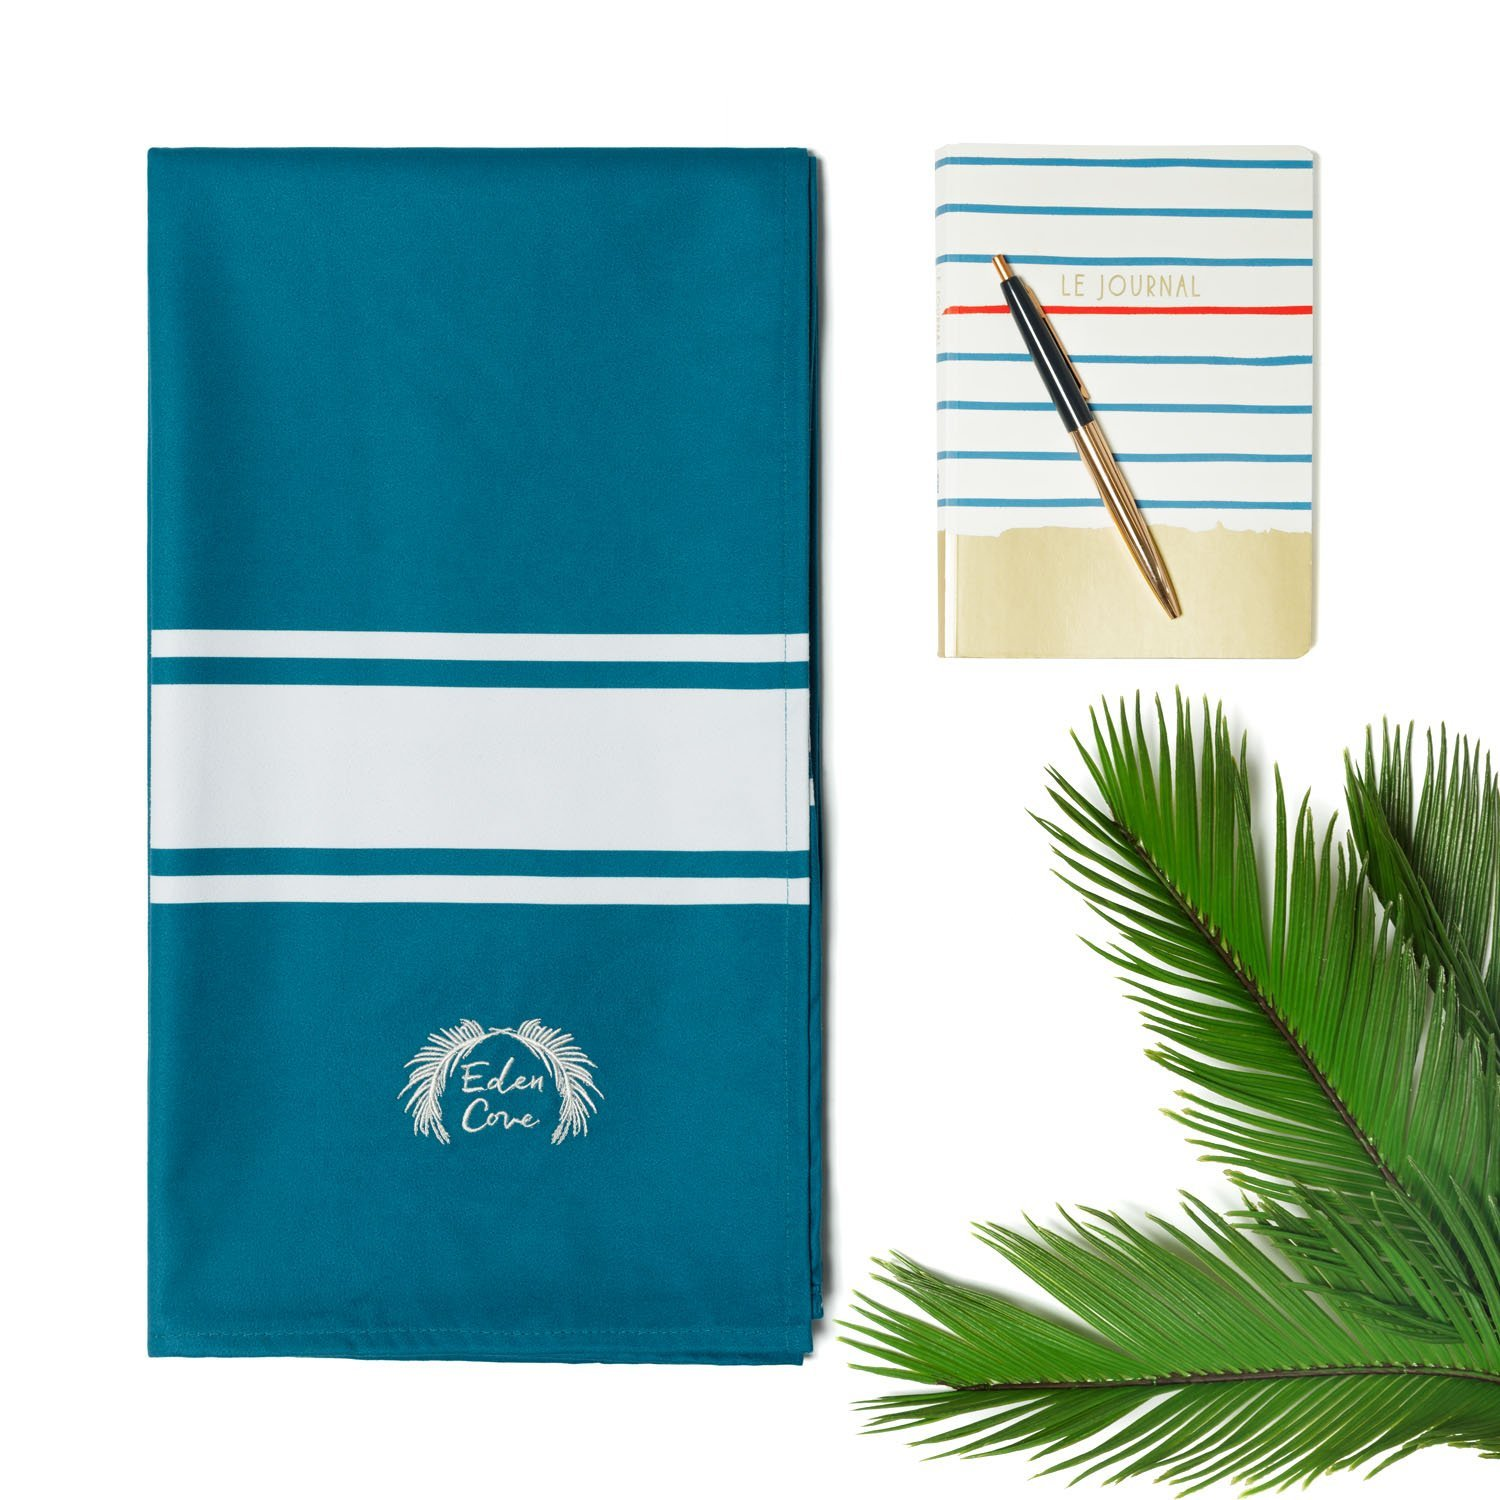 "Quick Dry Travel Towel /& Canvas Bag Travel Fast Drying Compact Absorbent Sports. Large 55x28/"" /& Extra Large 71x39/"" Eden Cove Microfiber Beach Towel Gym Swimming Lightweight for Beach"